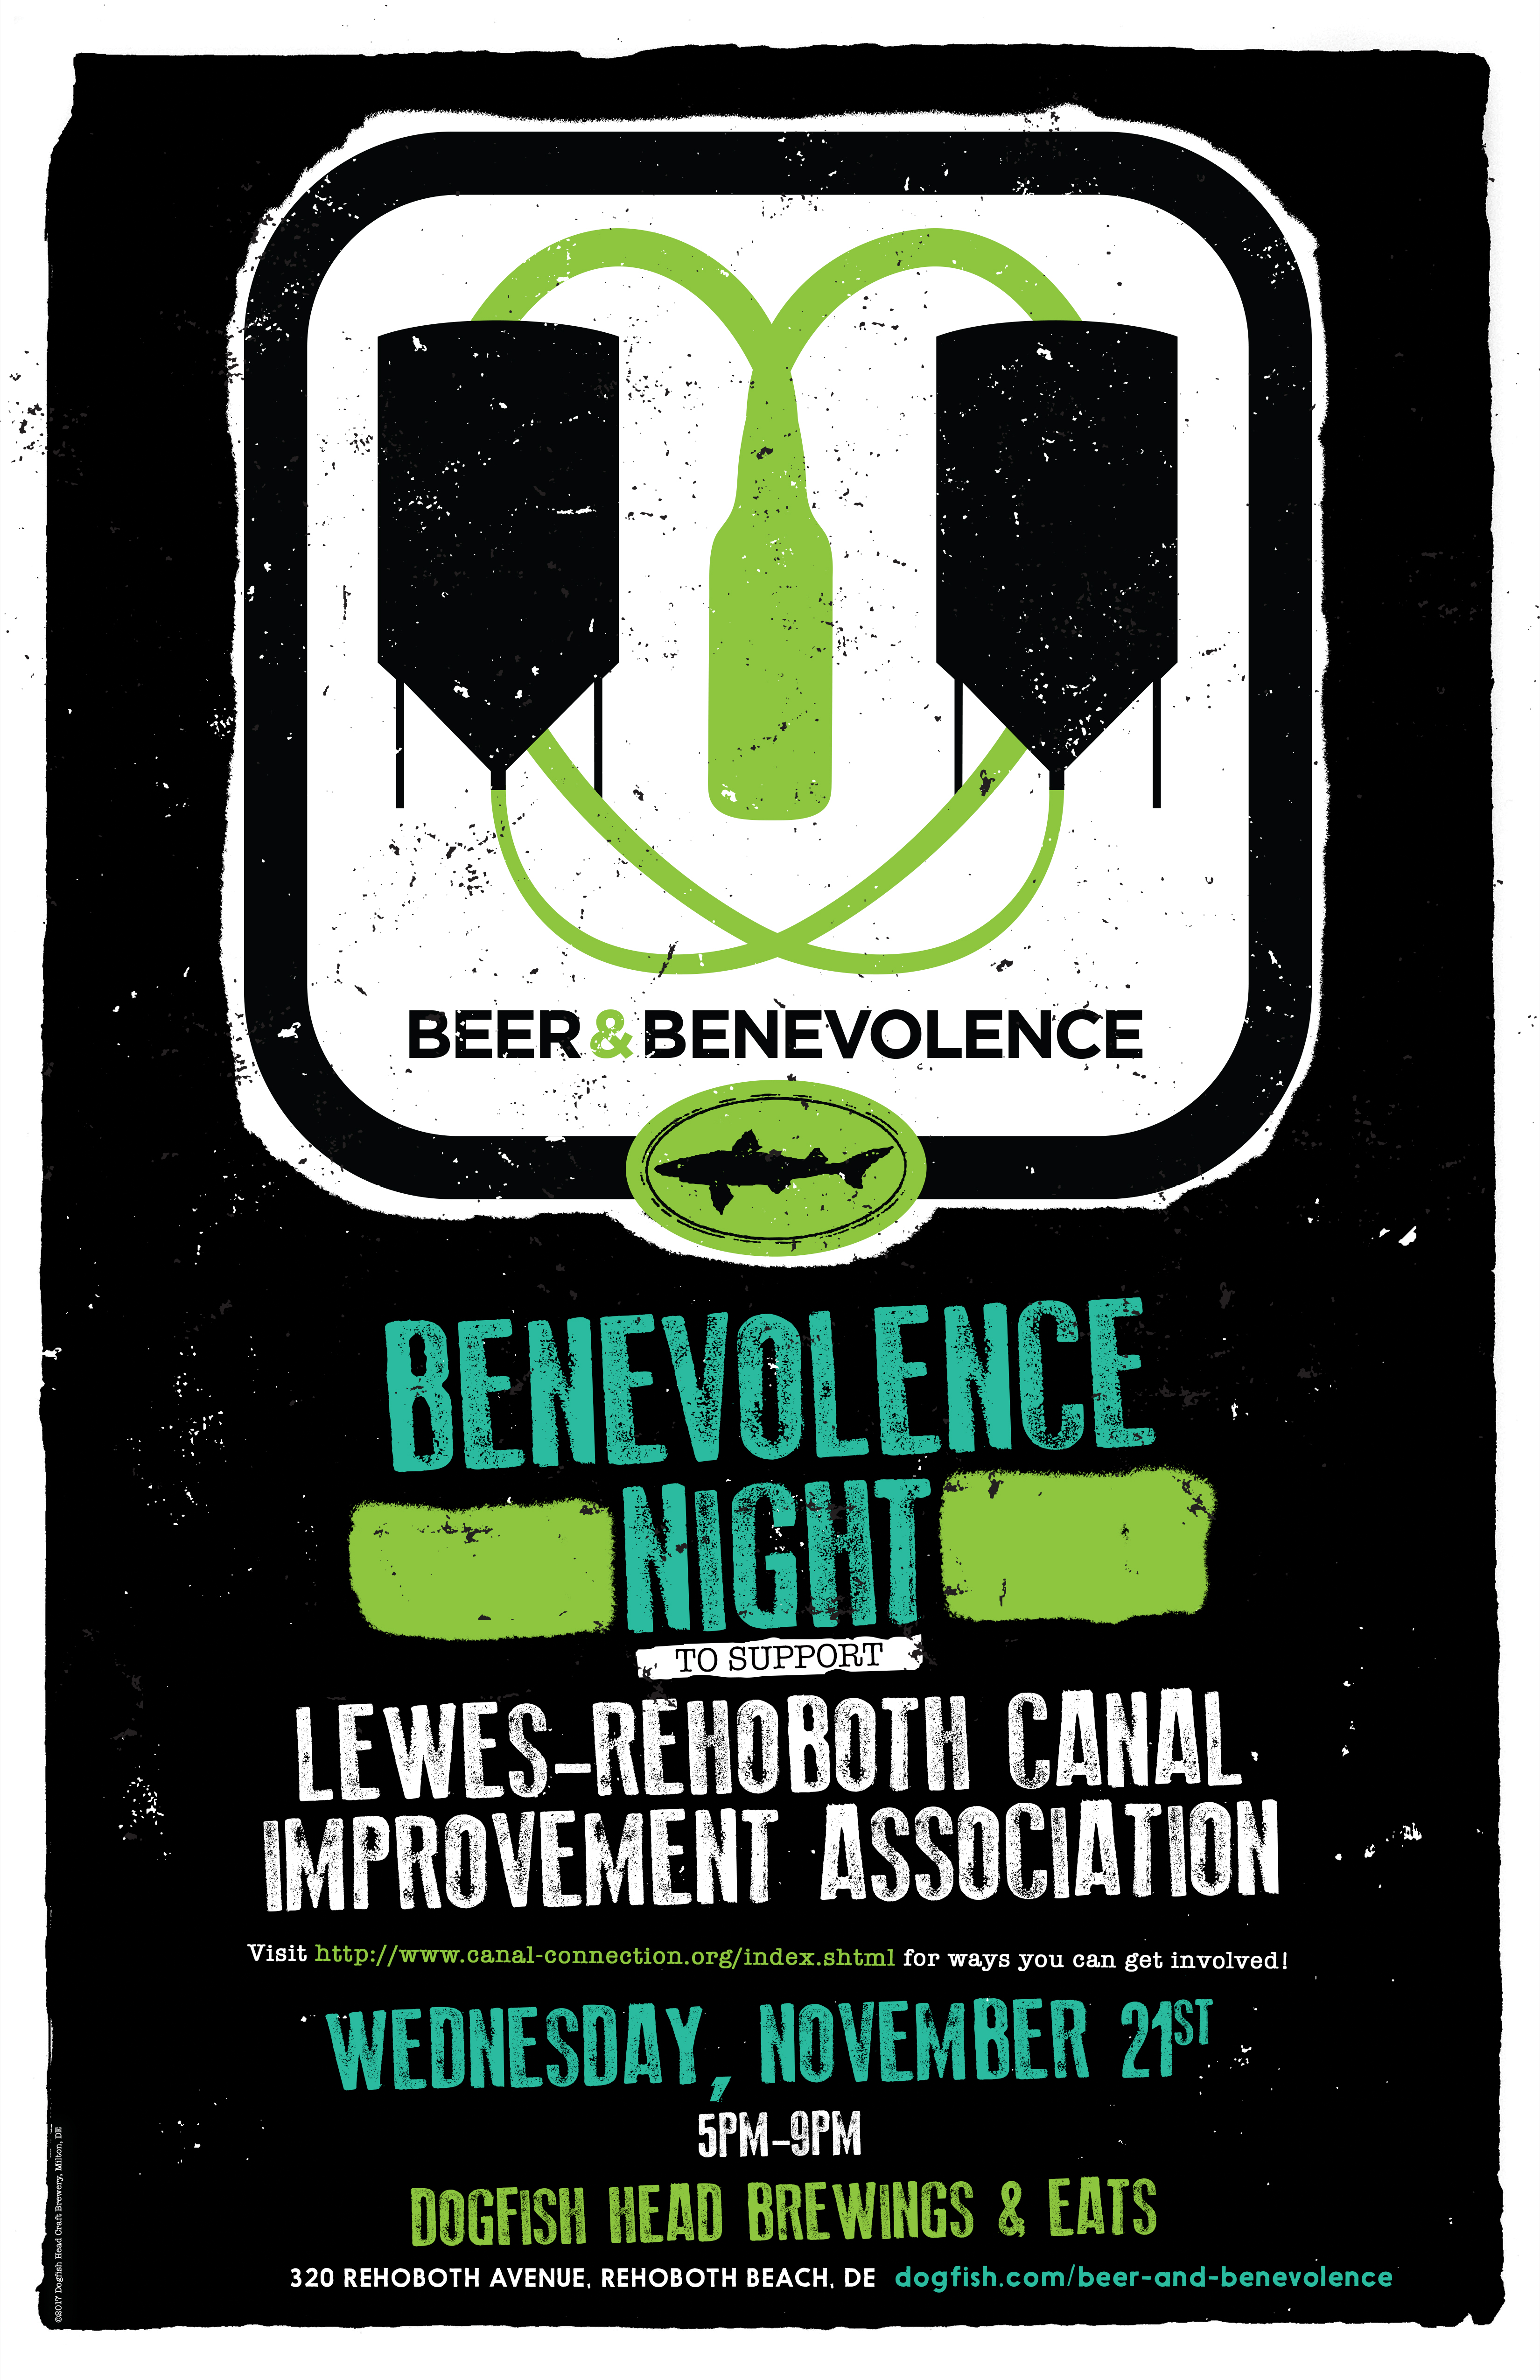 Beer & Benevolence Night - Lewes-Rehoboth Canal Improvement Association (LRCIA)